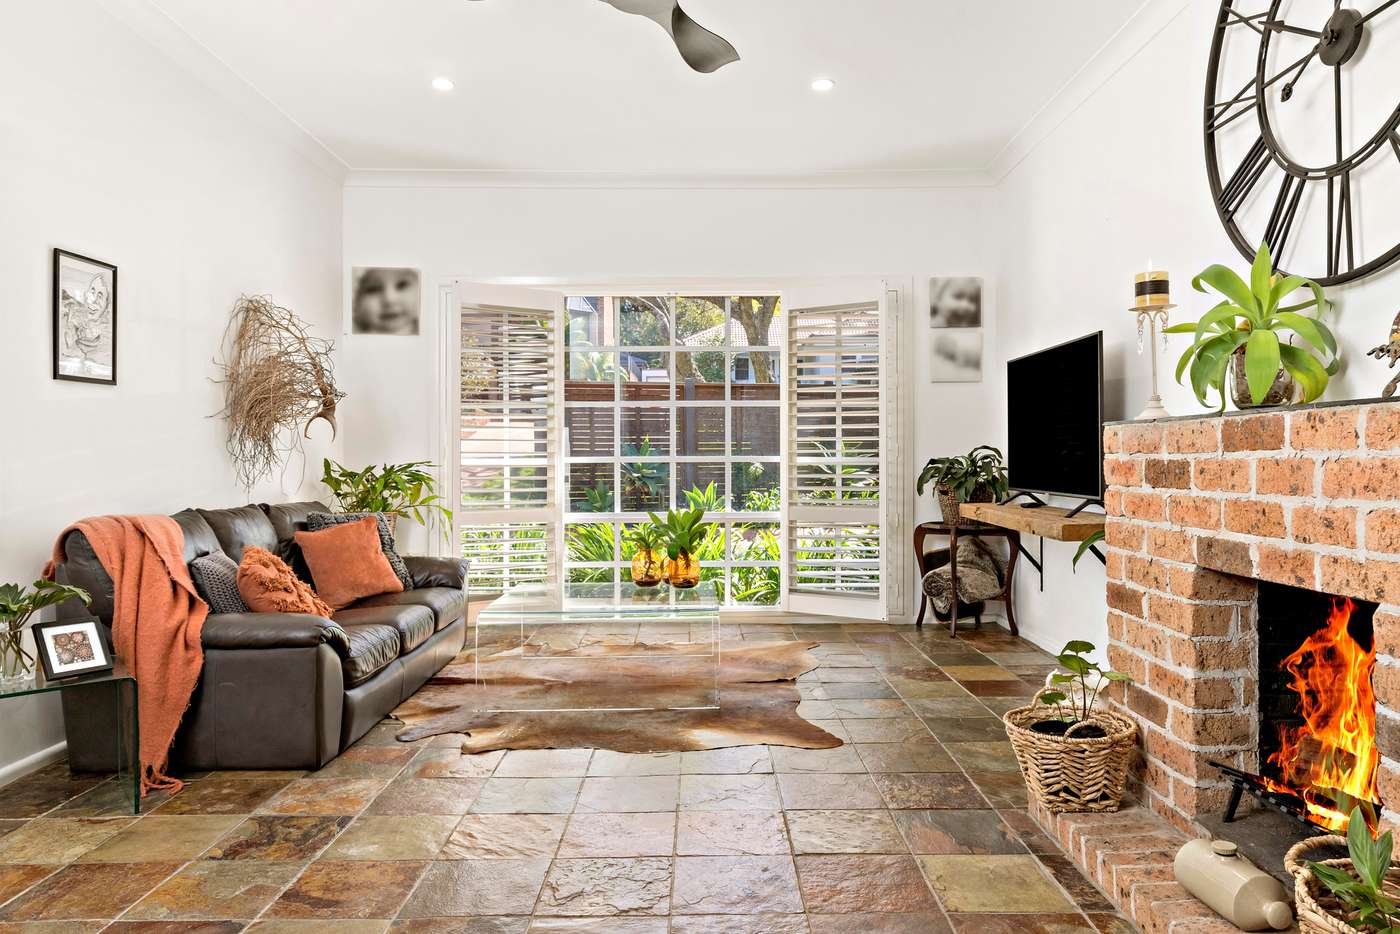 Main view of Homely house listing, 39 Eastern Avenue, Mangerton NSW 2500